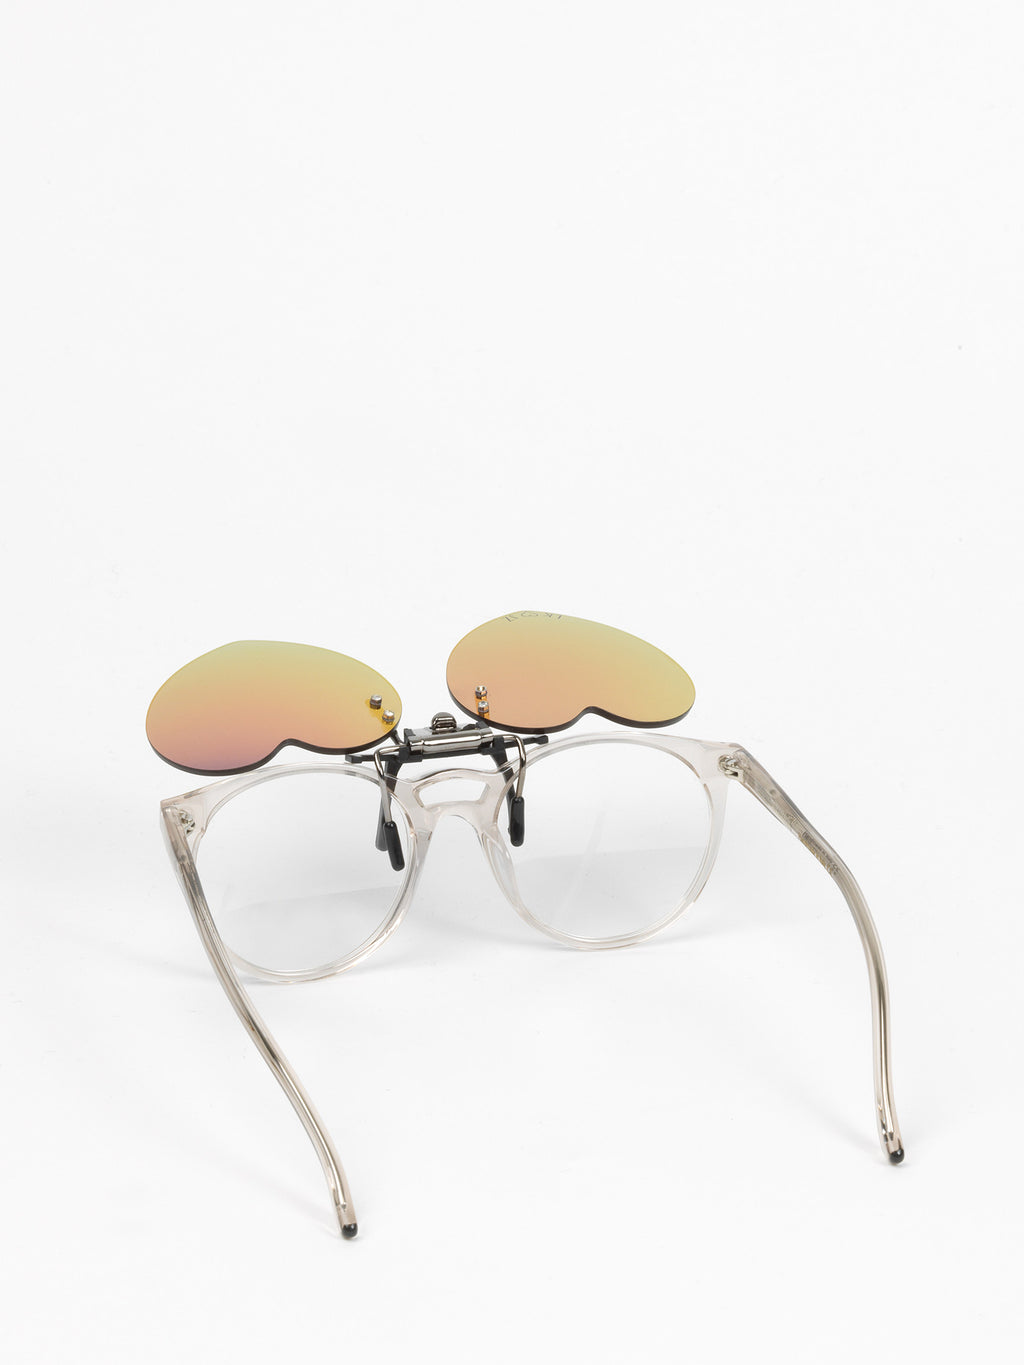 Julian Zigerli x Lunettes Kollektion / Heart Clip On / Purple - I Visionari